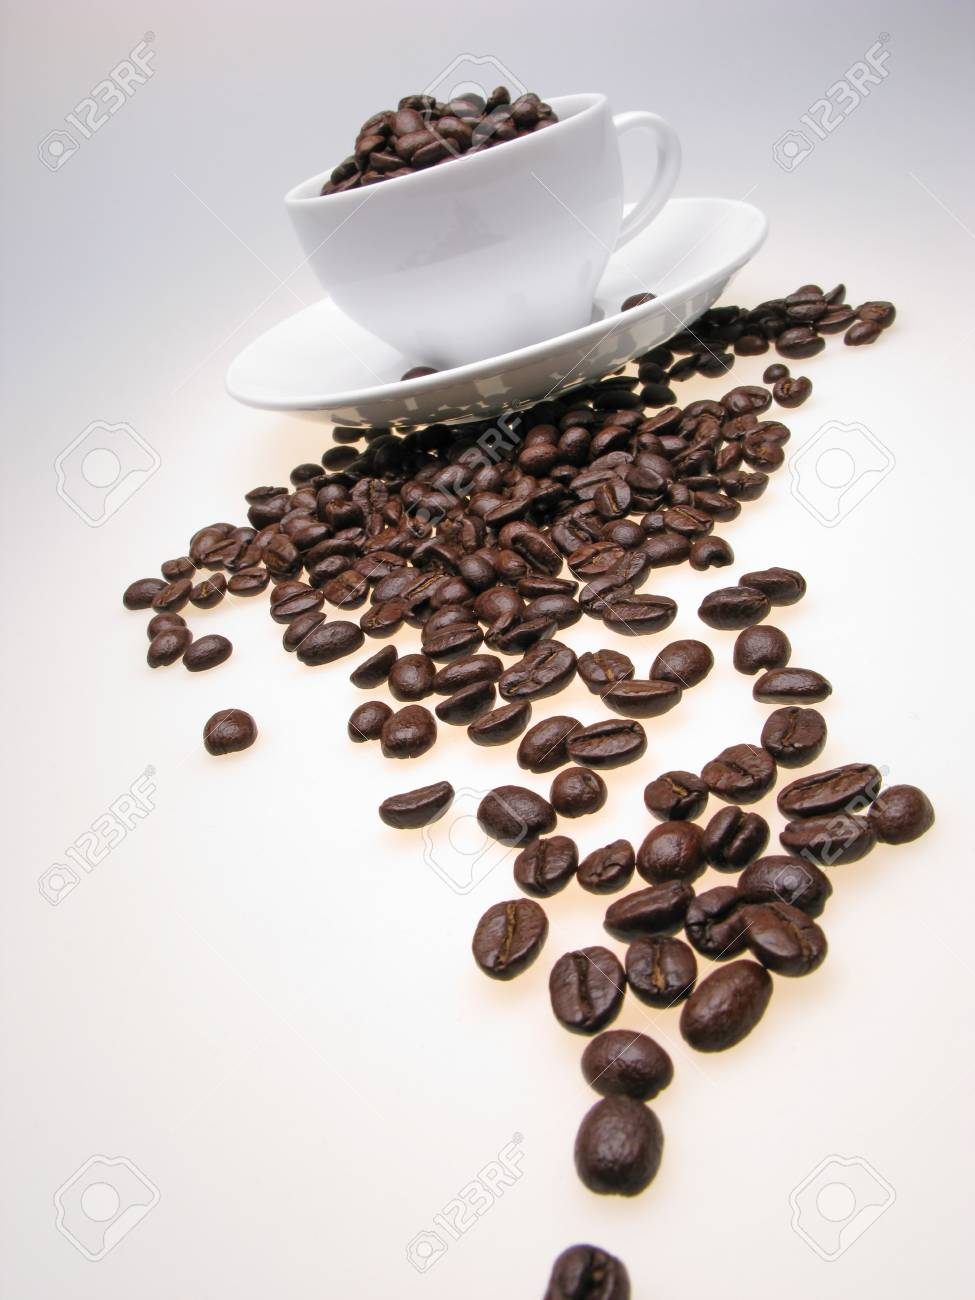 white color  cup and  plate filled with grains of coffee on  white background Stock Photo - 2273499